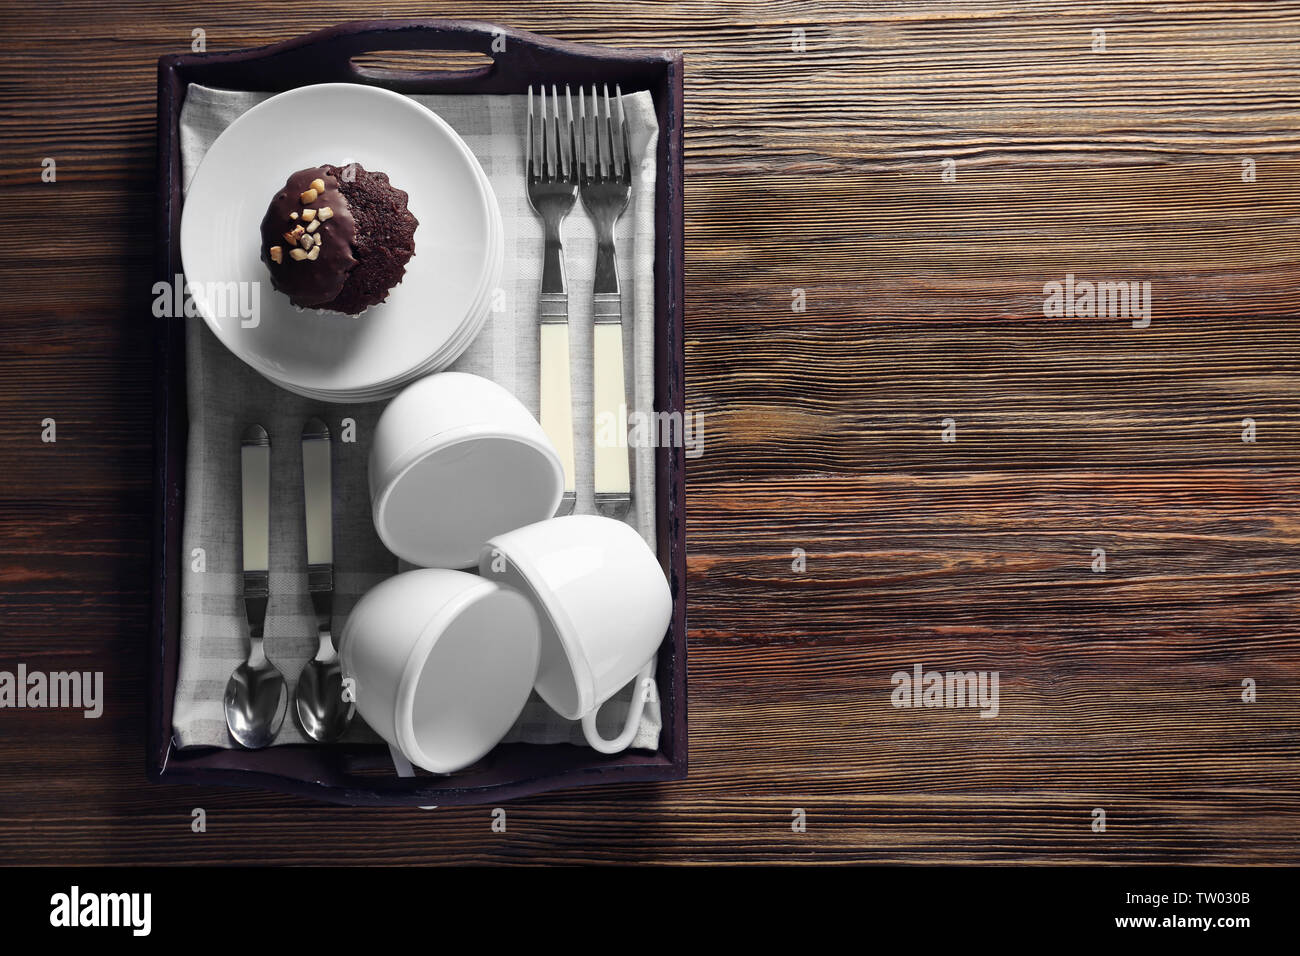 Cups set with tasty chocolate cake, on wooden tray - Stock Image